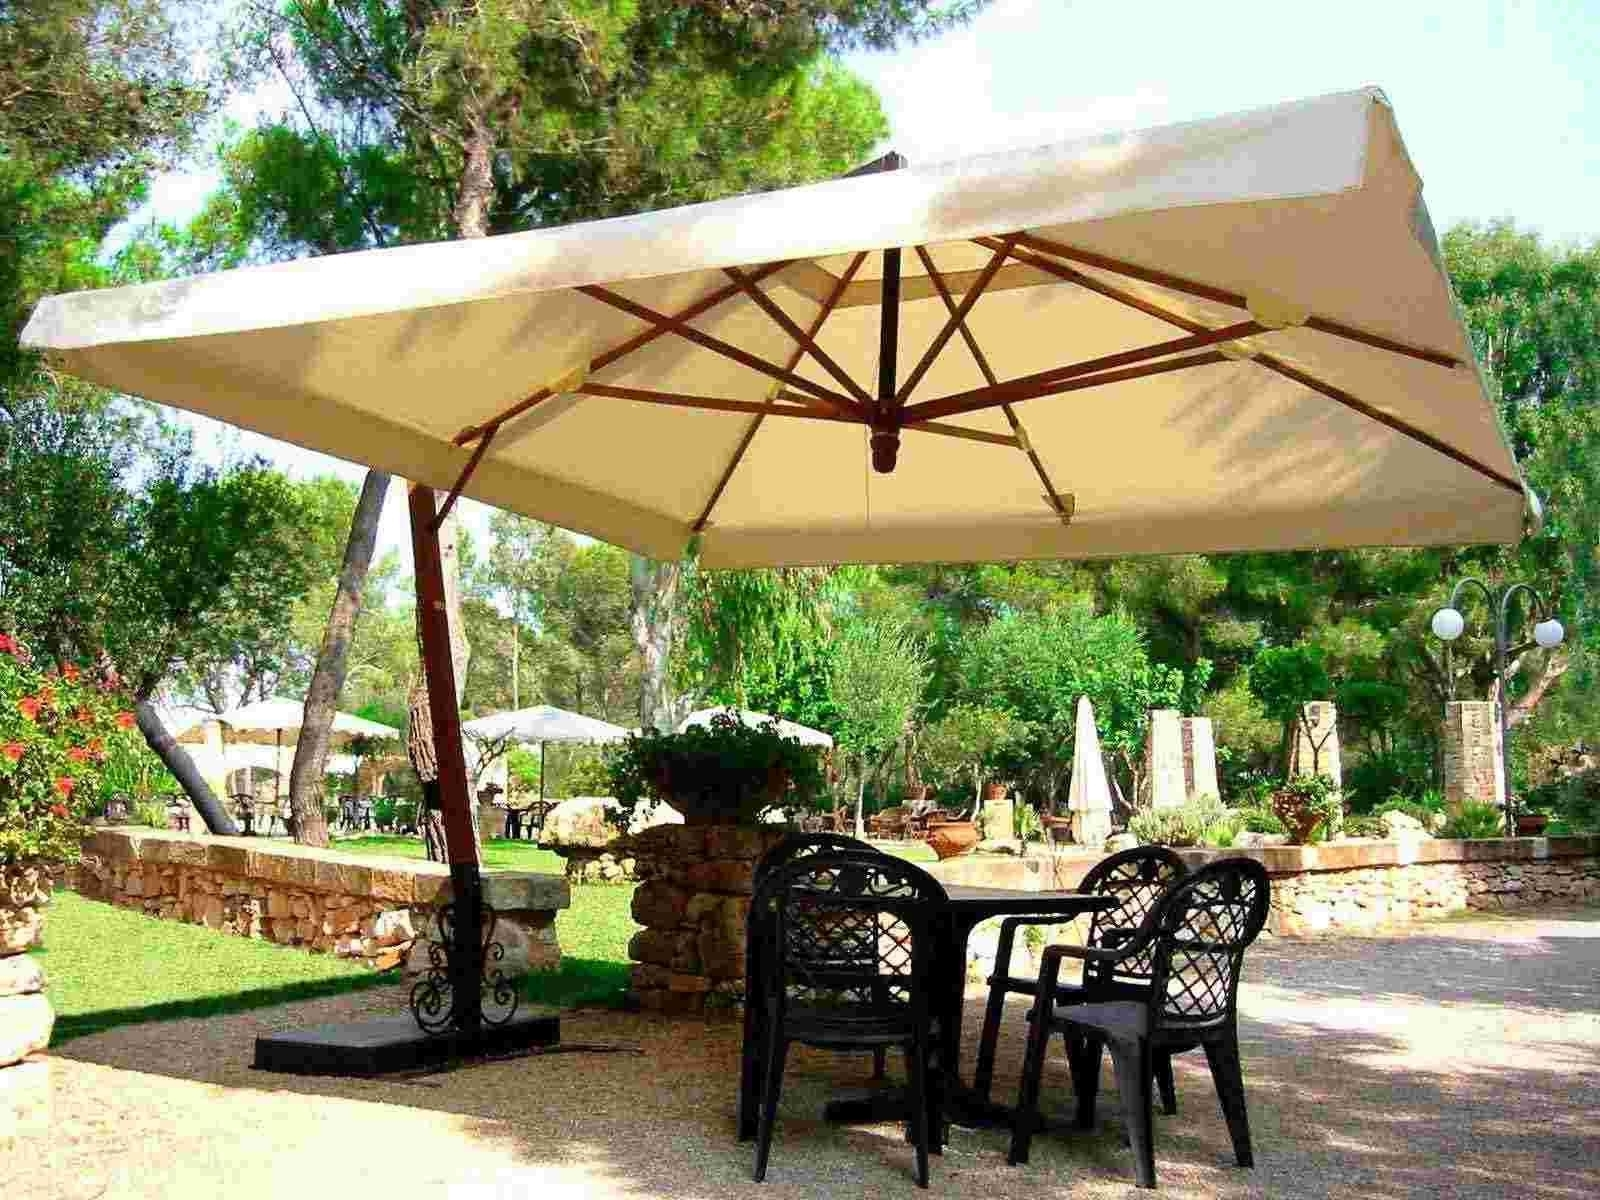 Patio Umbrellas With Table In Most Popular Patio Umbrella Clearance – Home Design Ideas (View 8 of 20)